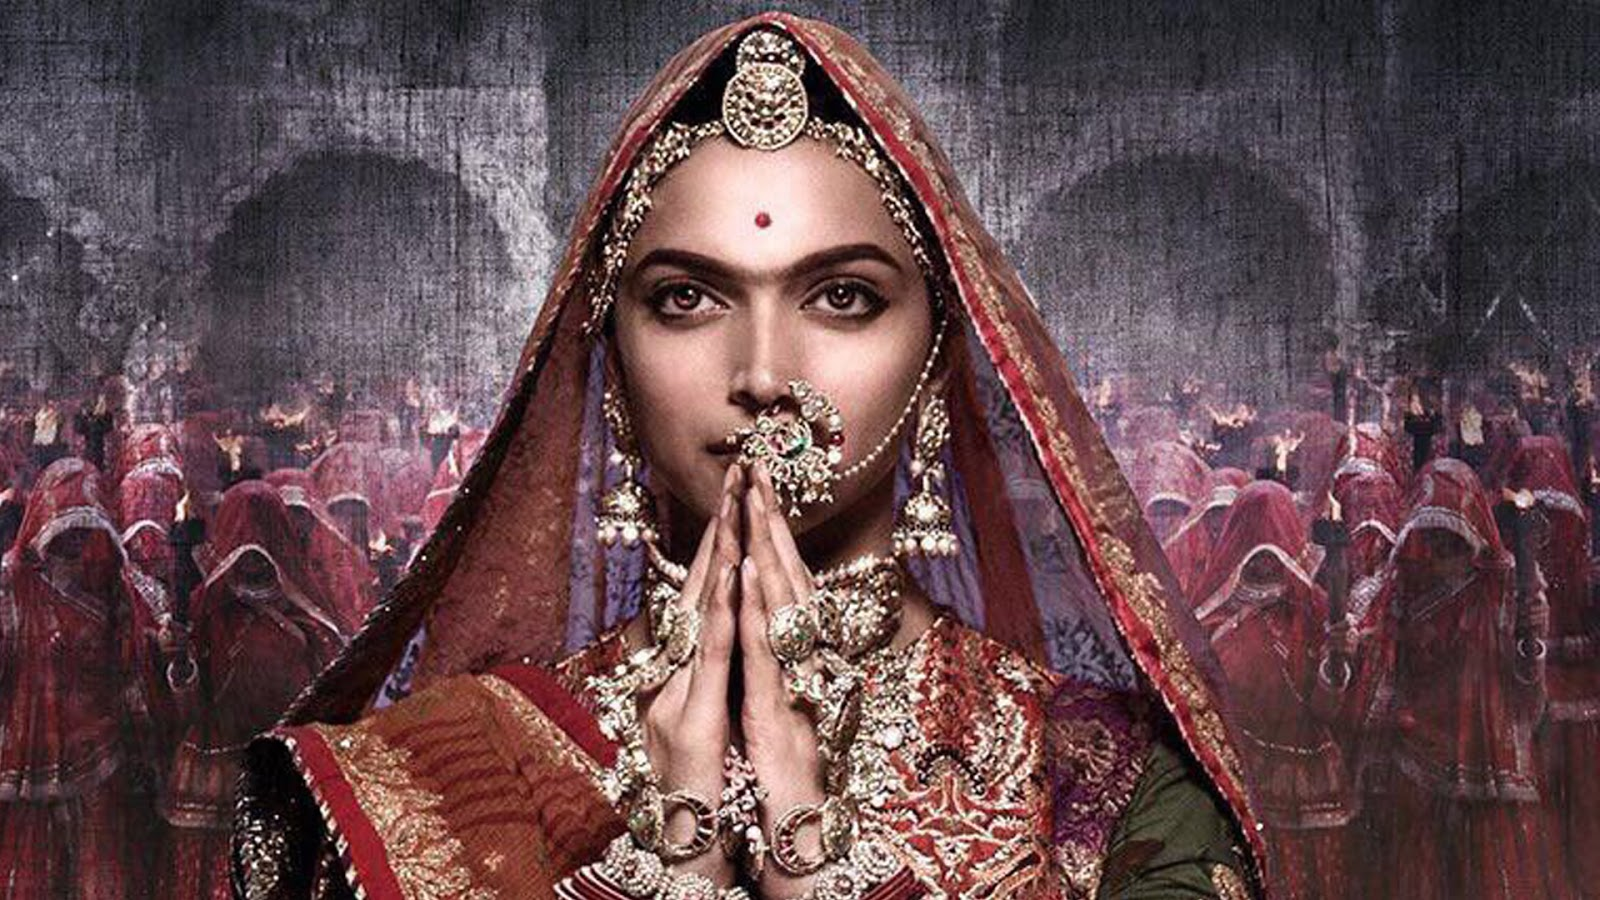 Padmavati Movie Hd Wallpapers Download Free 1080p